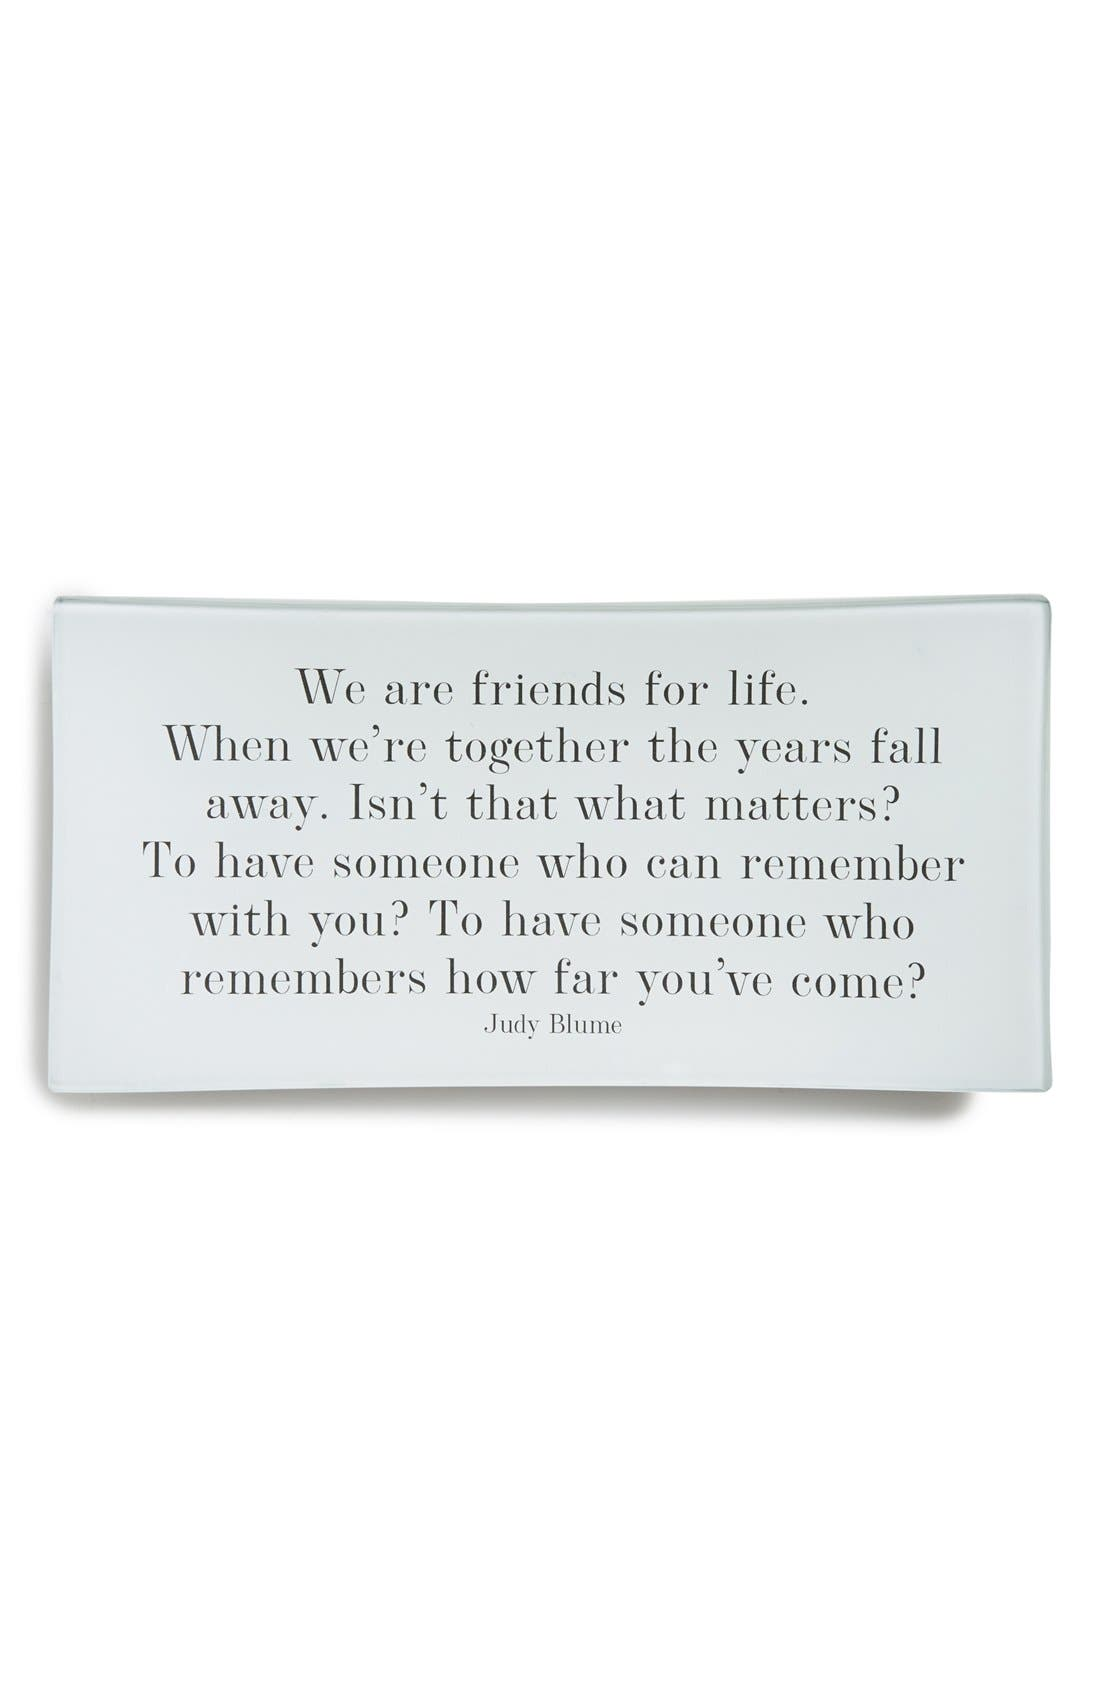 Ben's Garden 'We Are Friends for Life' Decorative Glass Tray